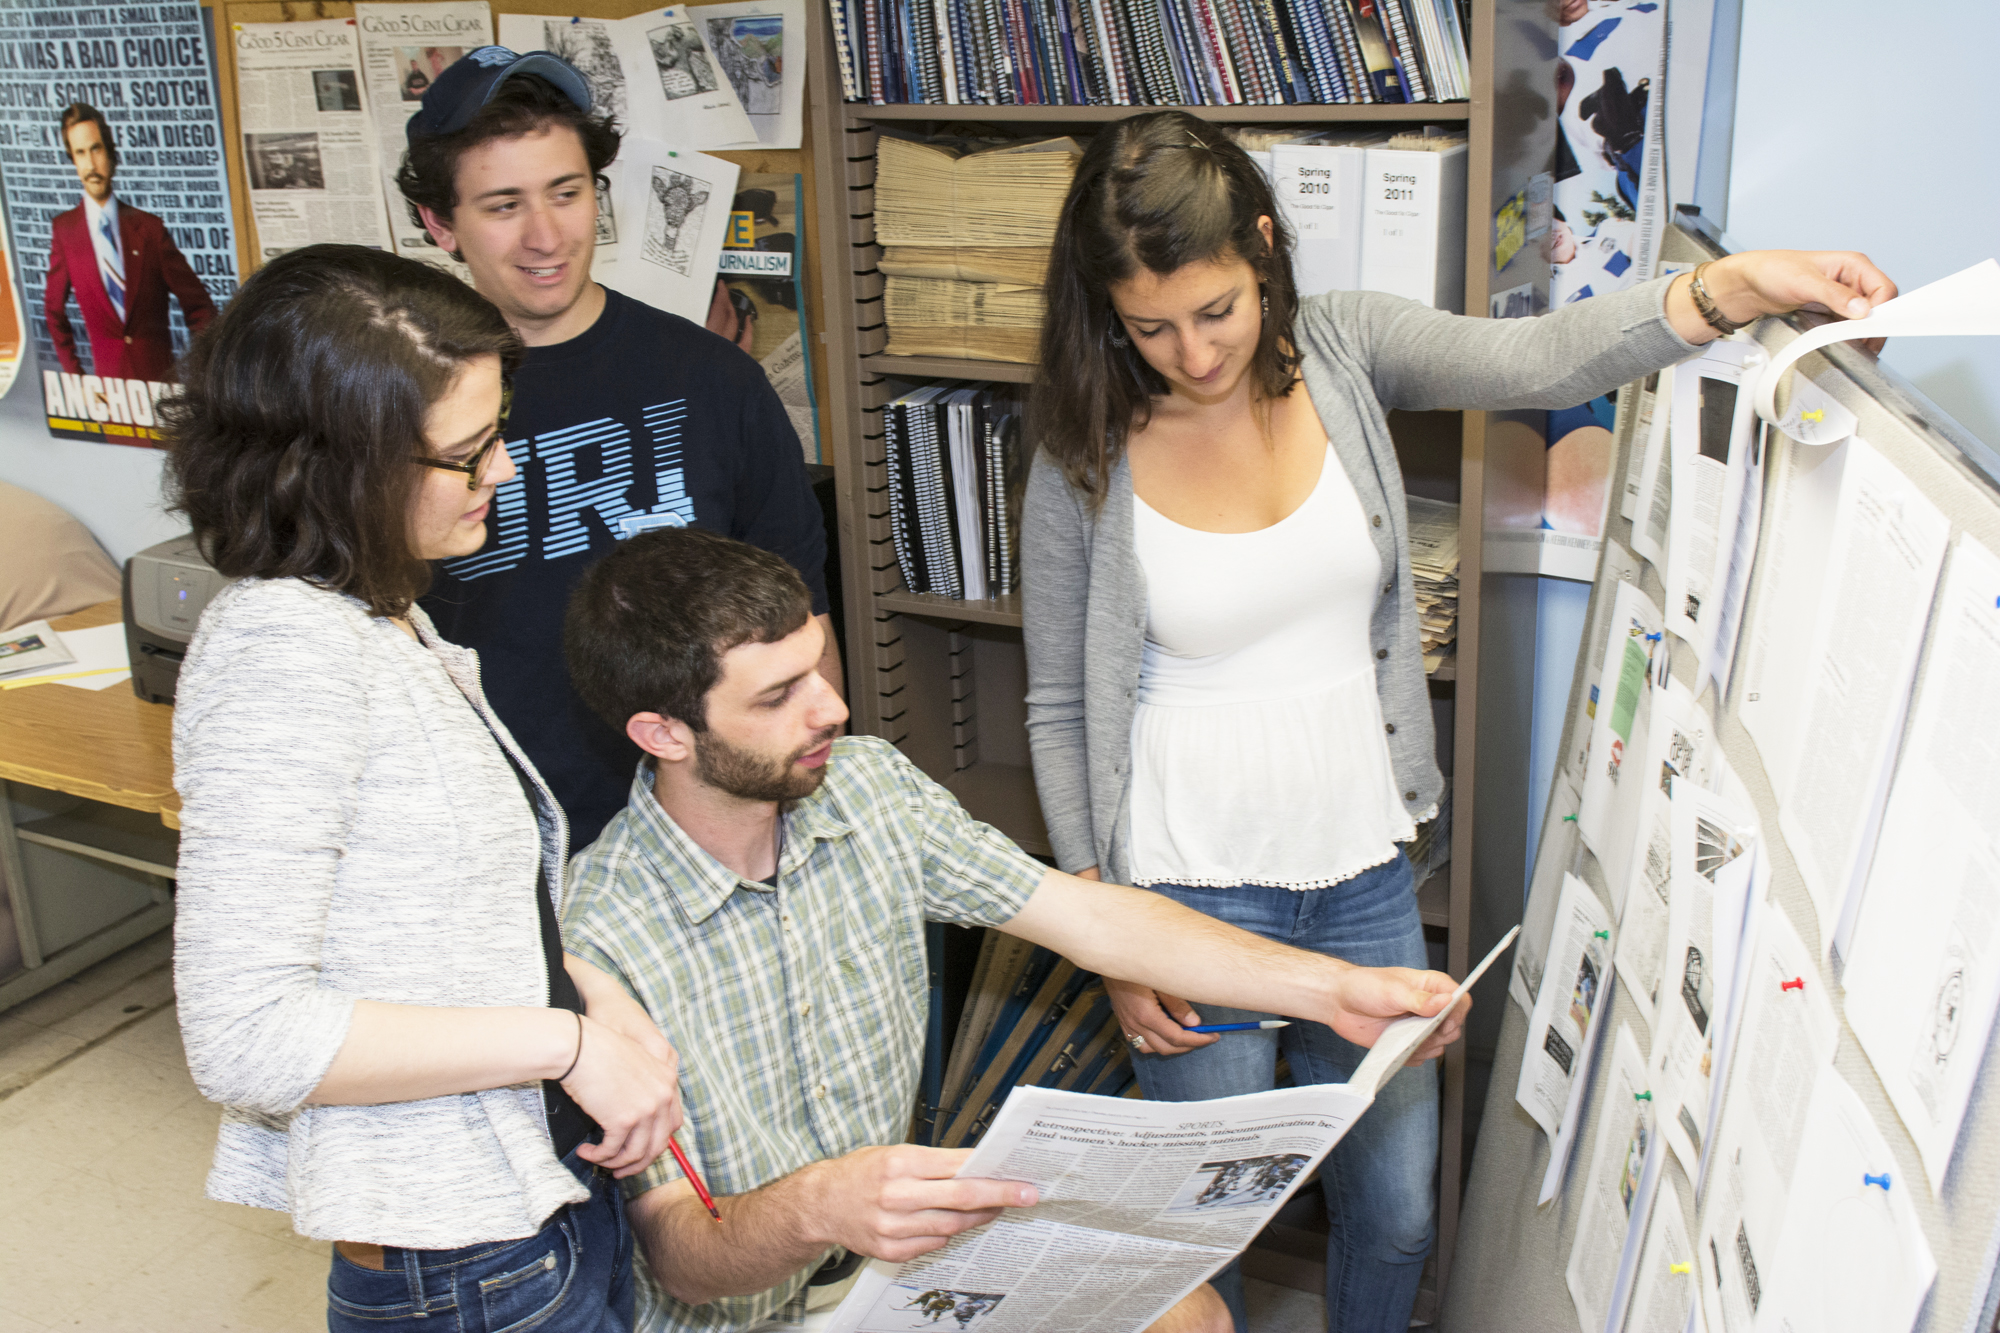 Students in the editing room